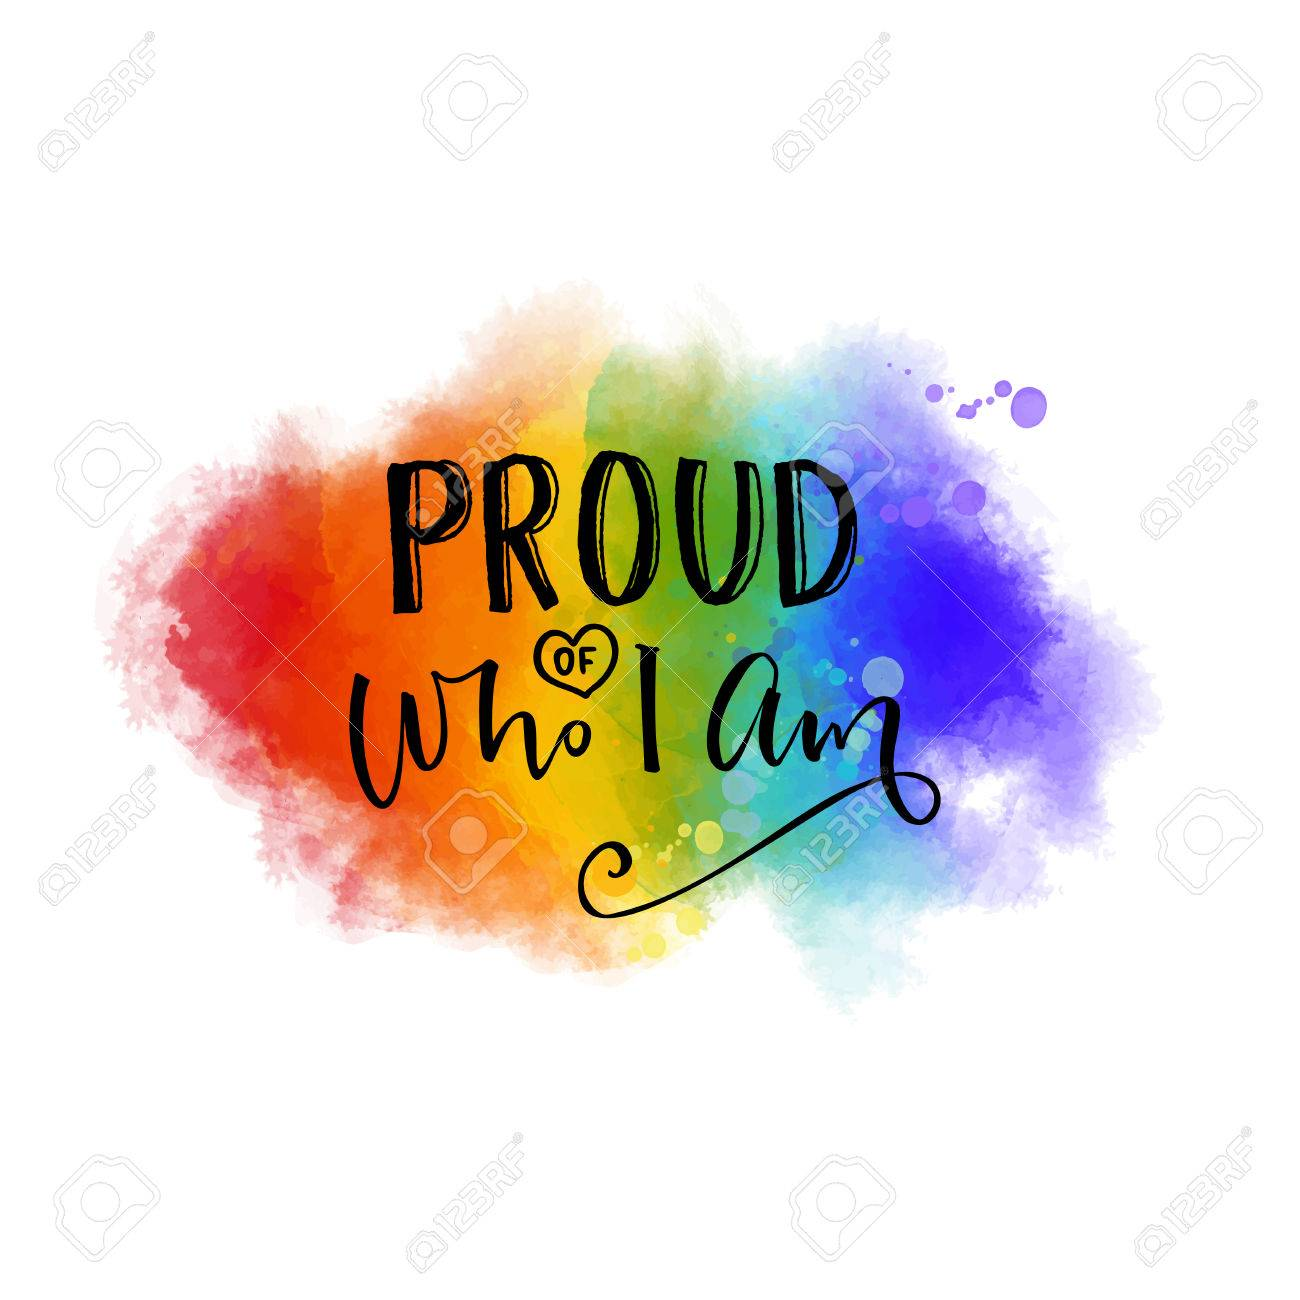 Stock illustration 3d red text quot yes quot stock illustration royalty - Inspiration Quote Gay Pride Slogan On 6